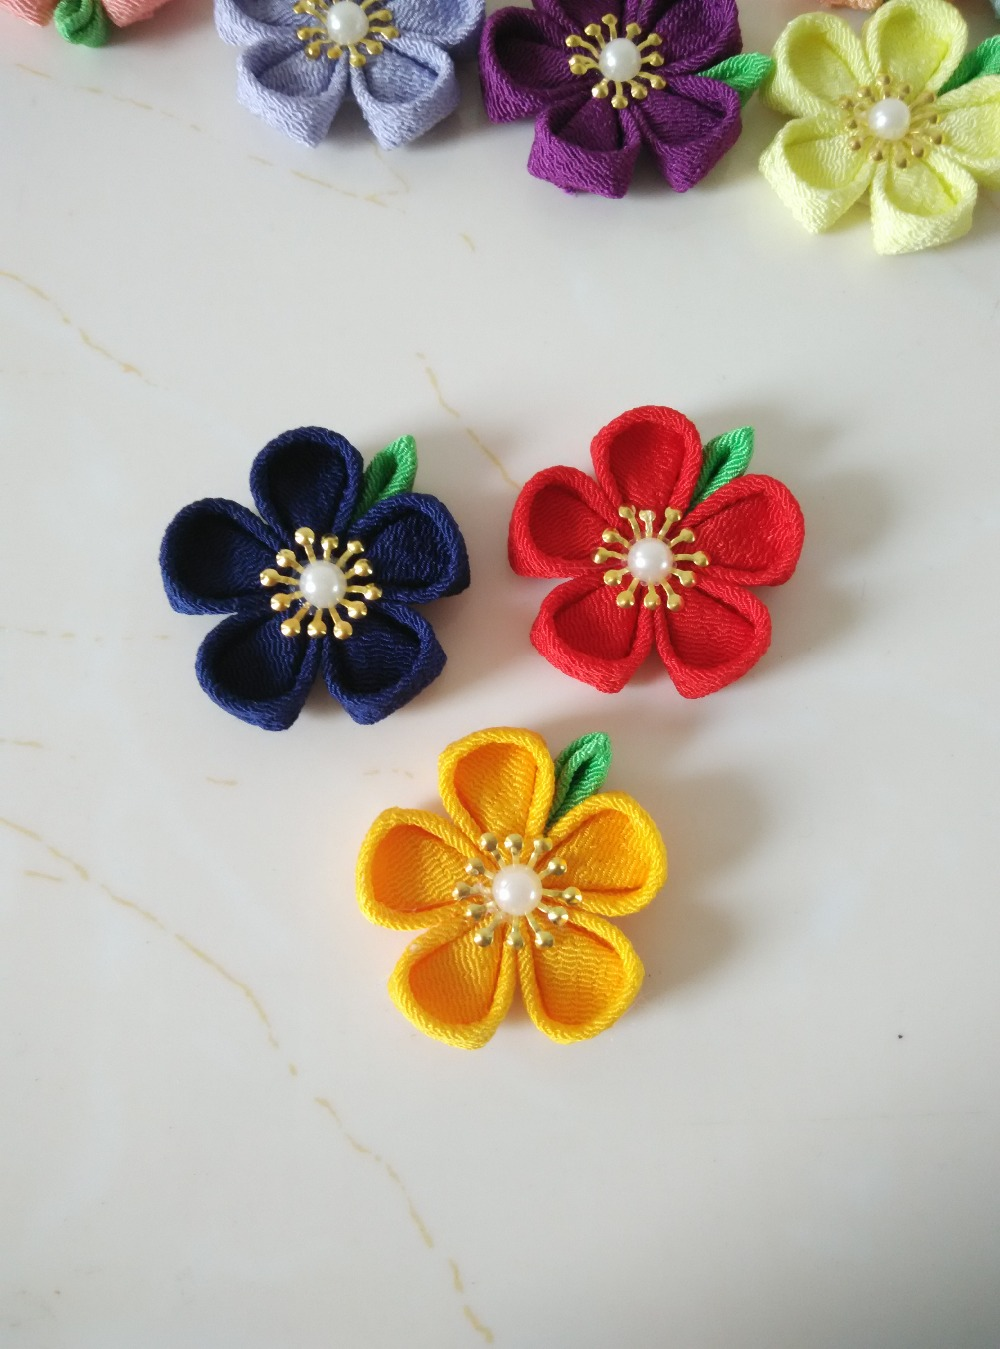 Handmade half finished kanzashi flowers diy craft supplies to make handmade half finished kanzashi flowers diy craft supplies to make lapel flower pins red orange yellow green blue purple in diy craft supplies from home mightylinksfo